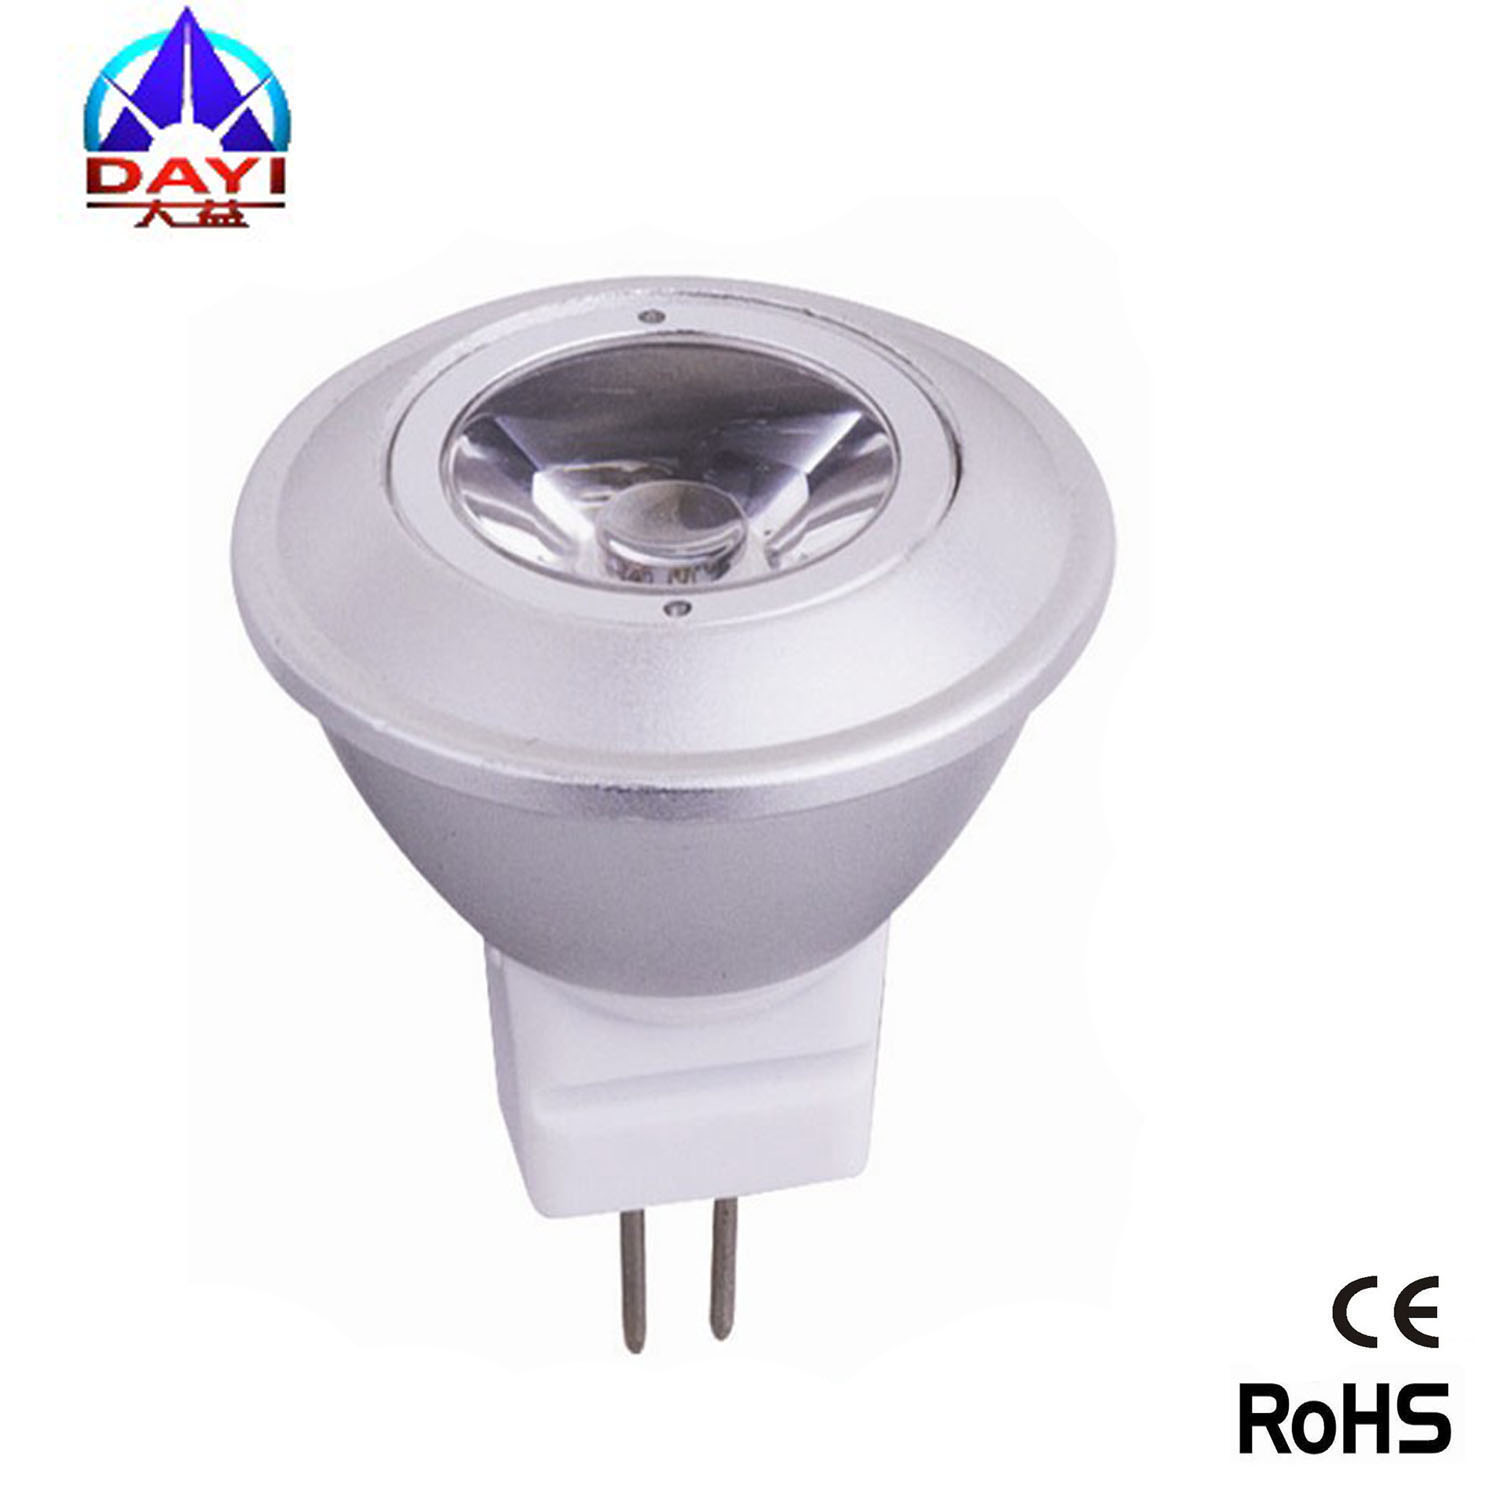 lamp ceiling bathroom dender spotlight county downlights bar white lighting spot lights light led wiring recessed